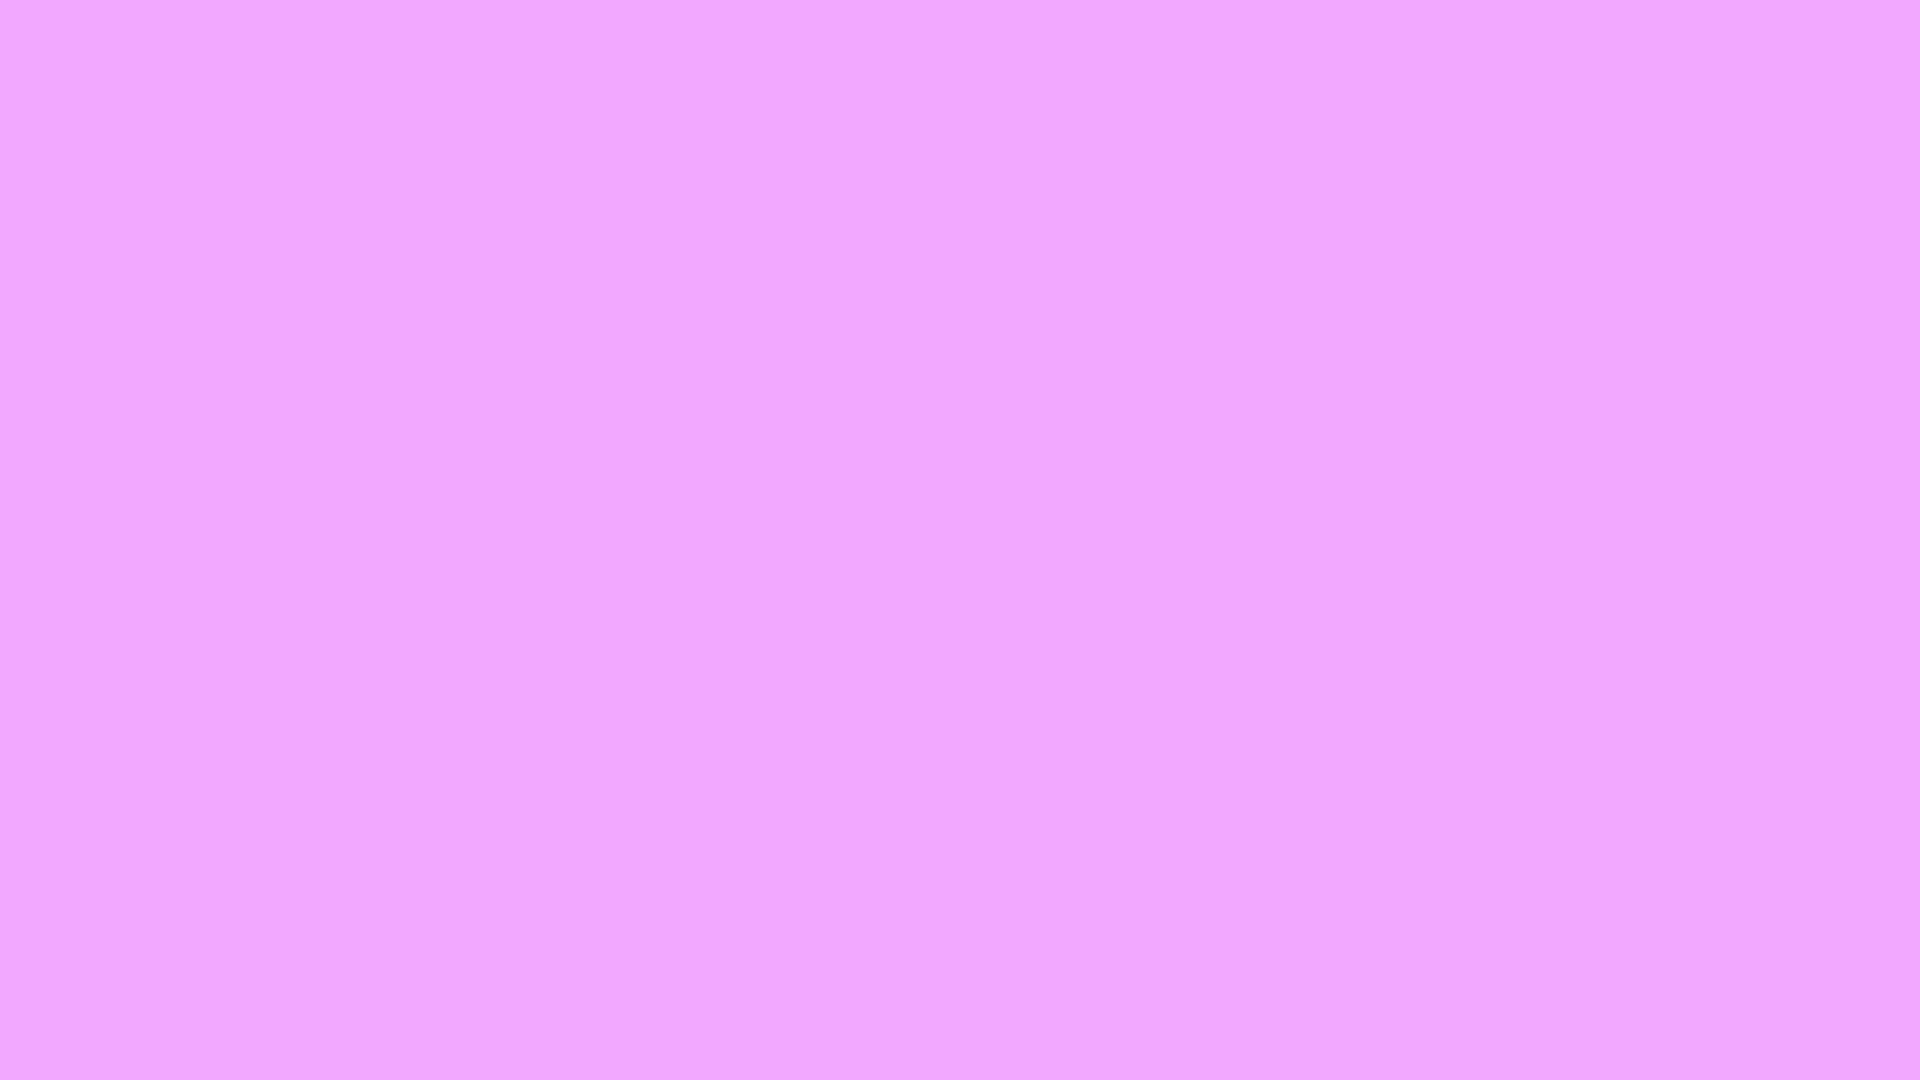 Lavender the Color - Yahoo Image Search Results